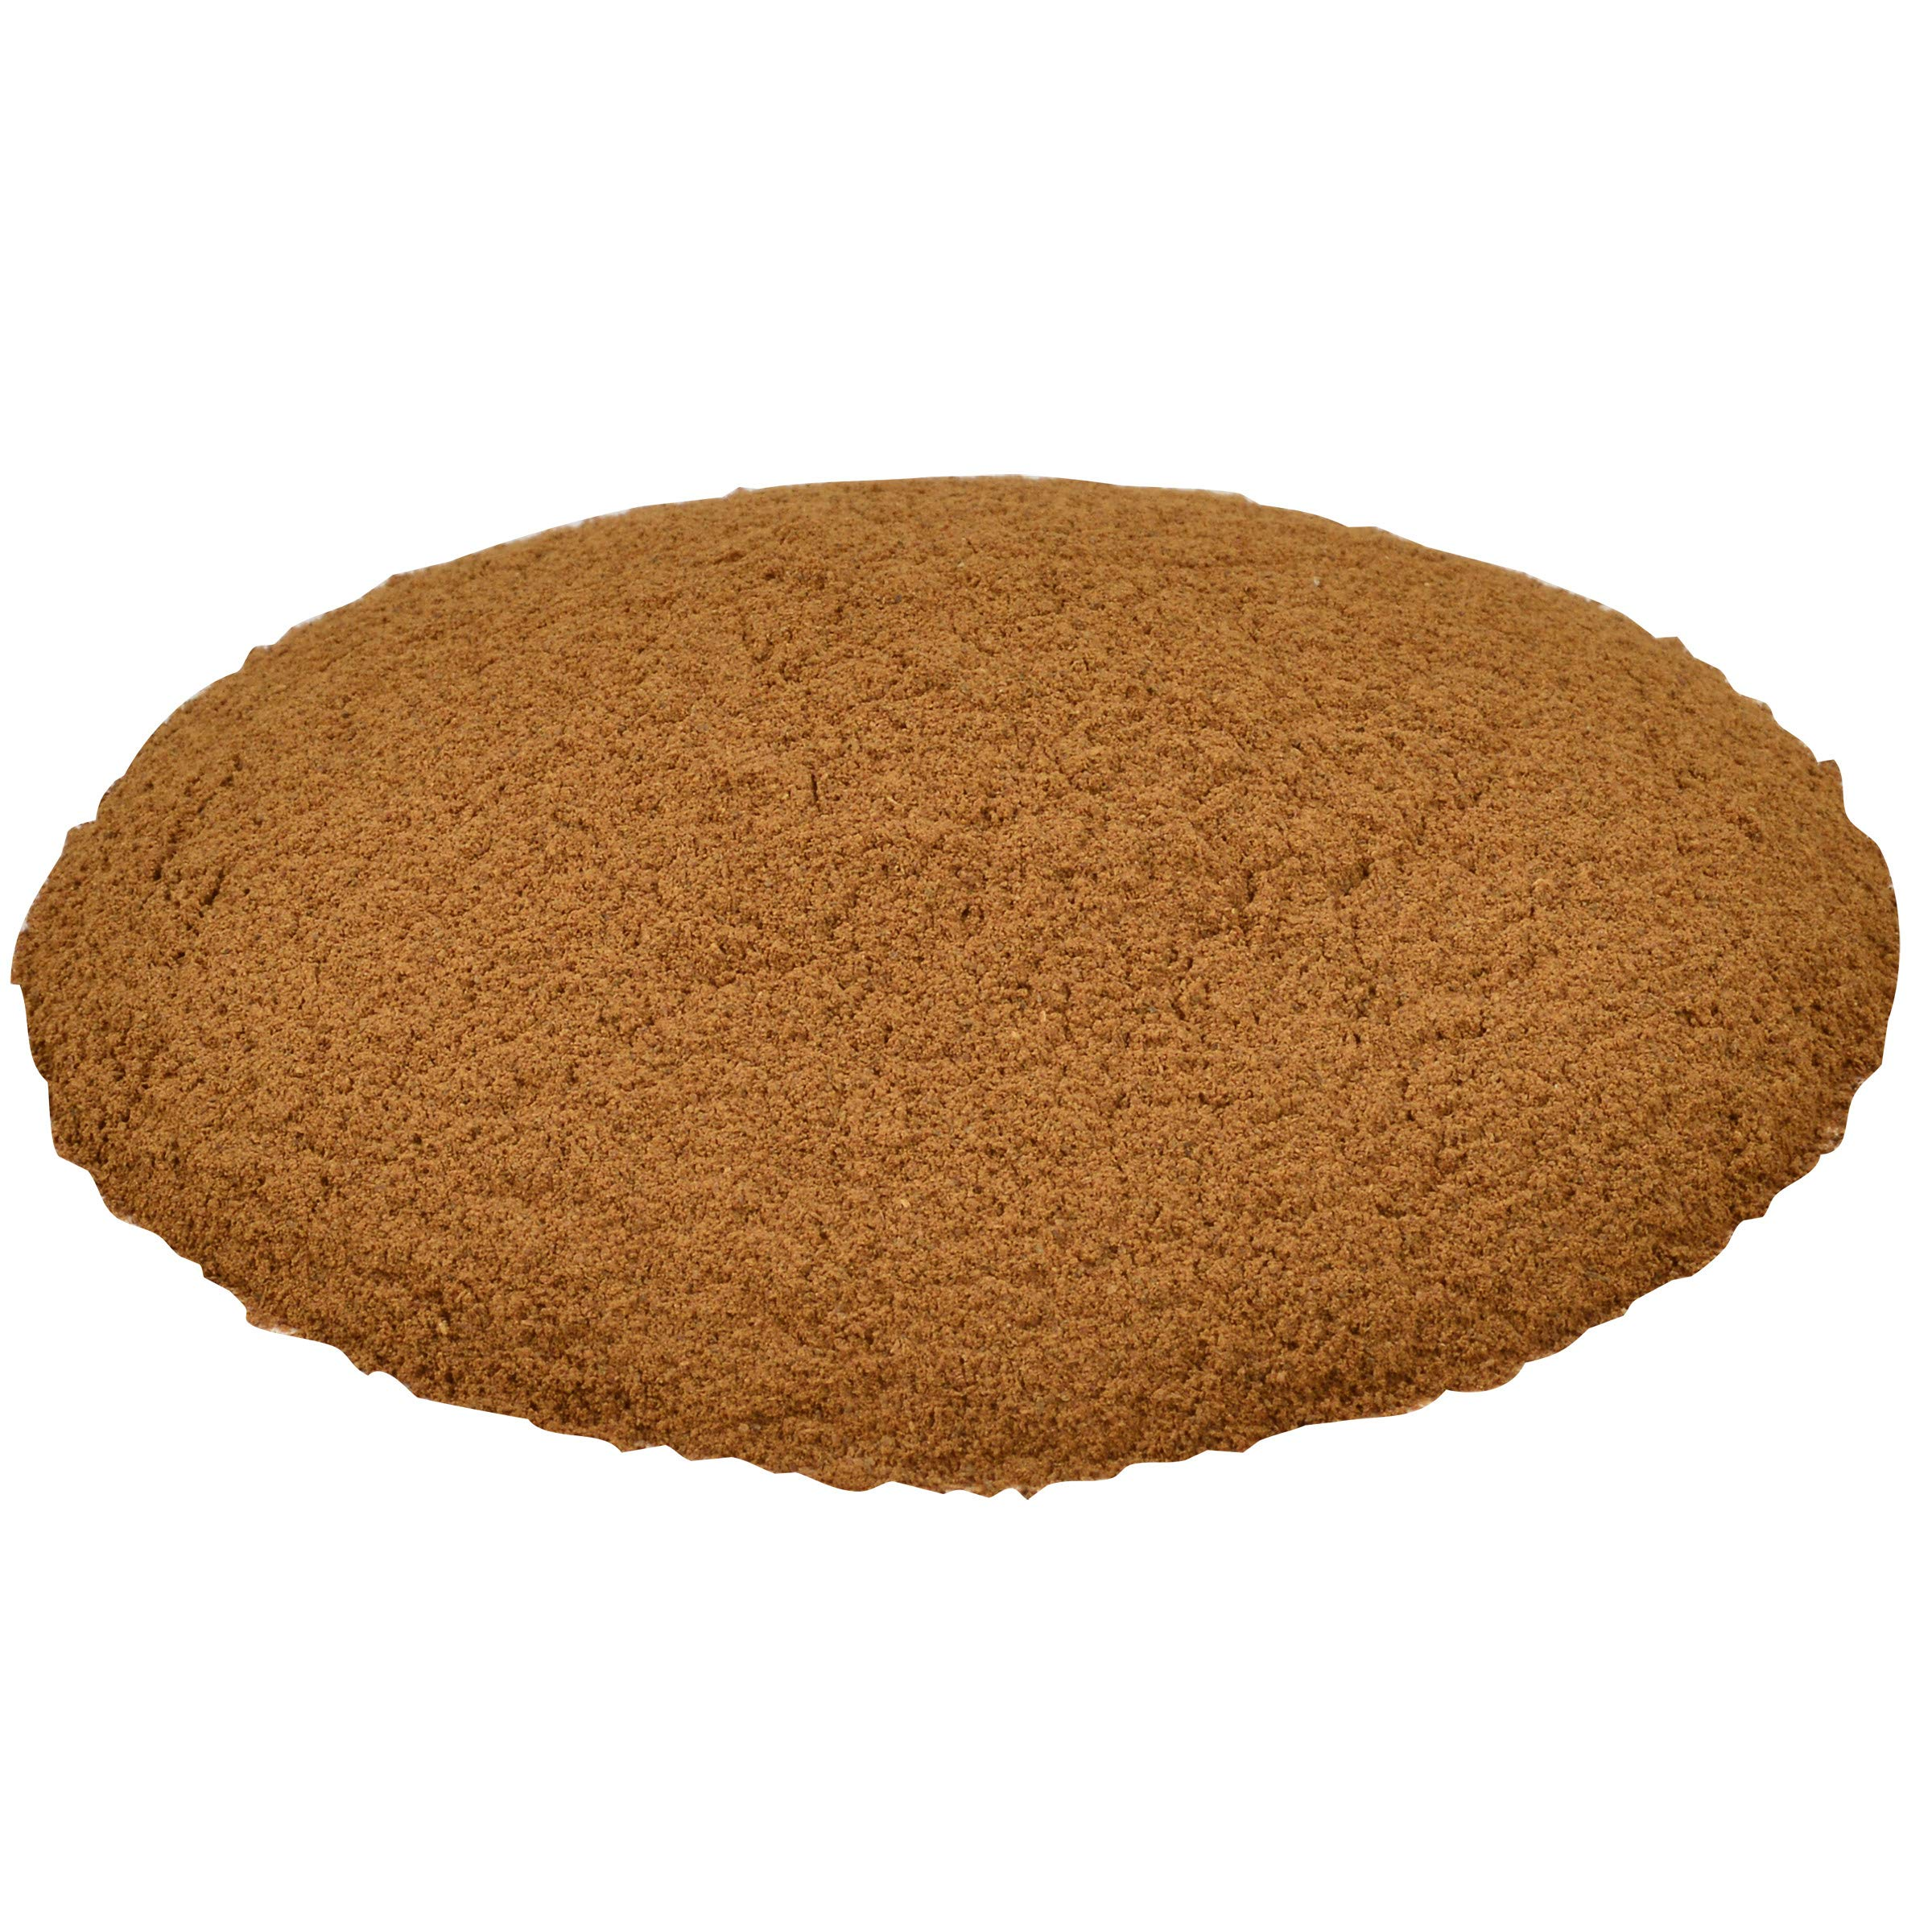 McCormick Culinary Ground Cinnamon, 5 lbs by McCormick For Chefs (Image #3)